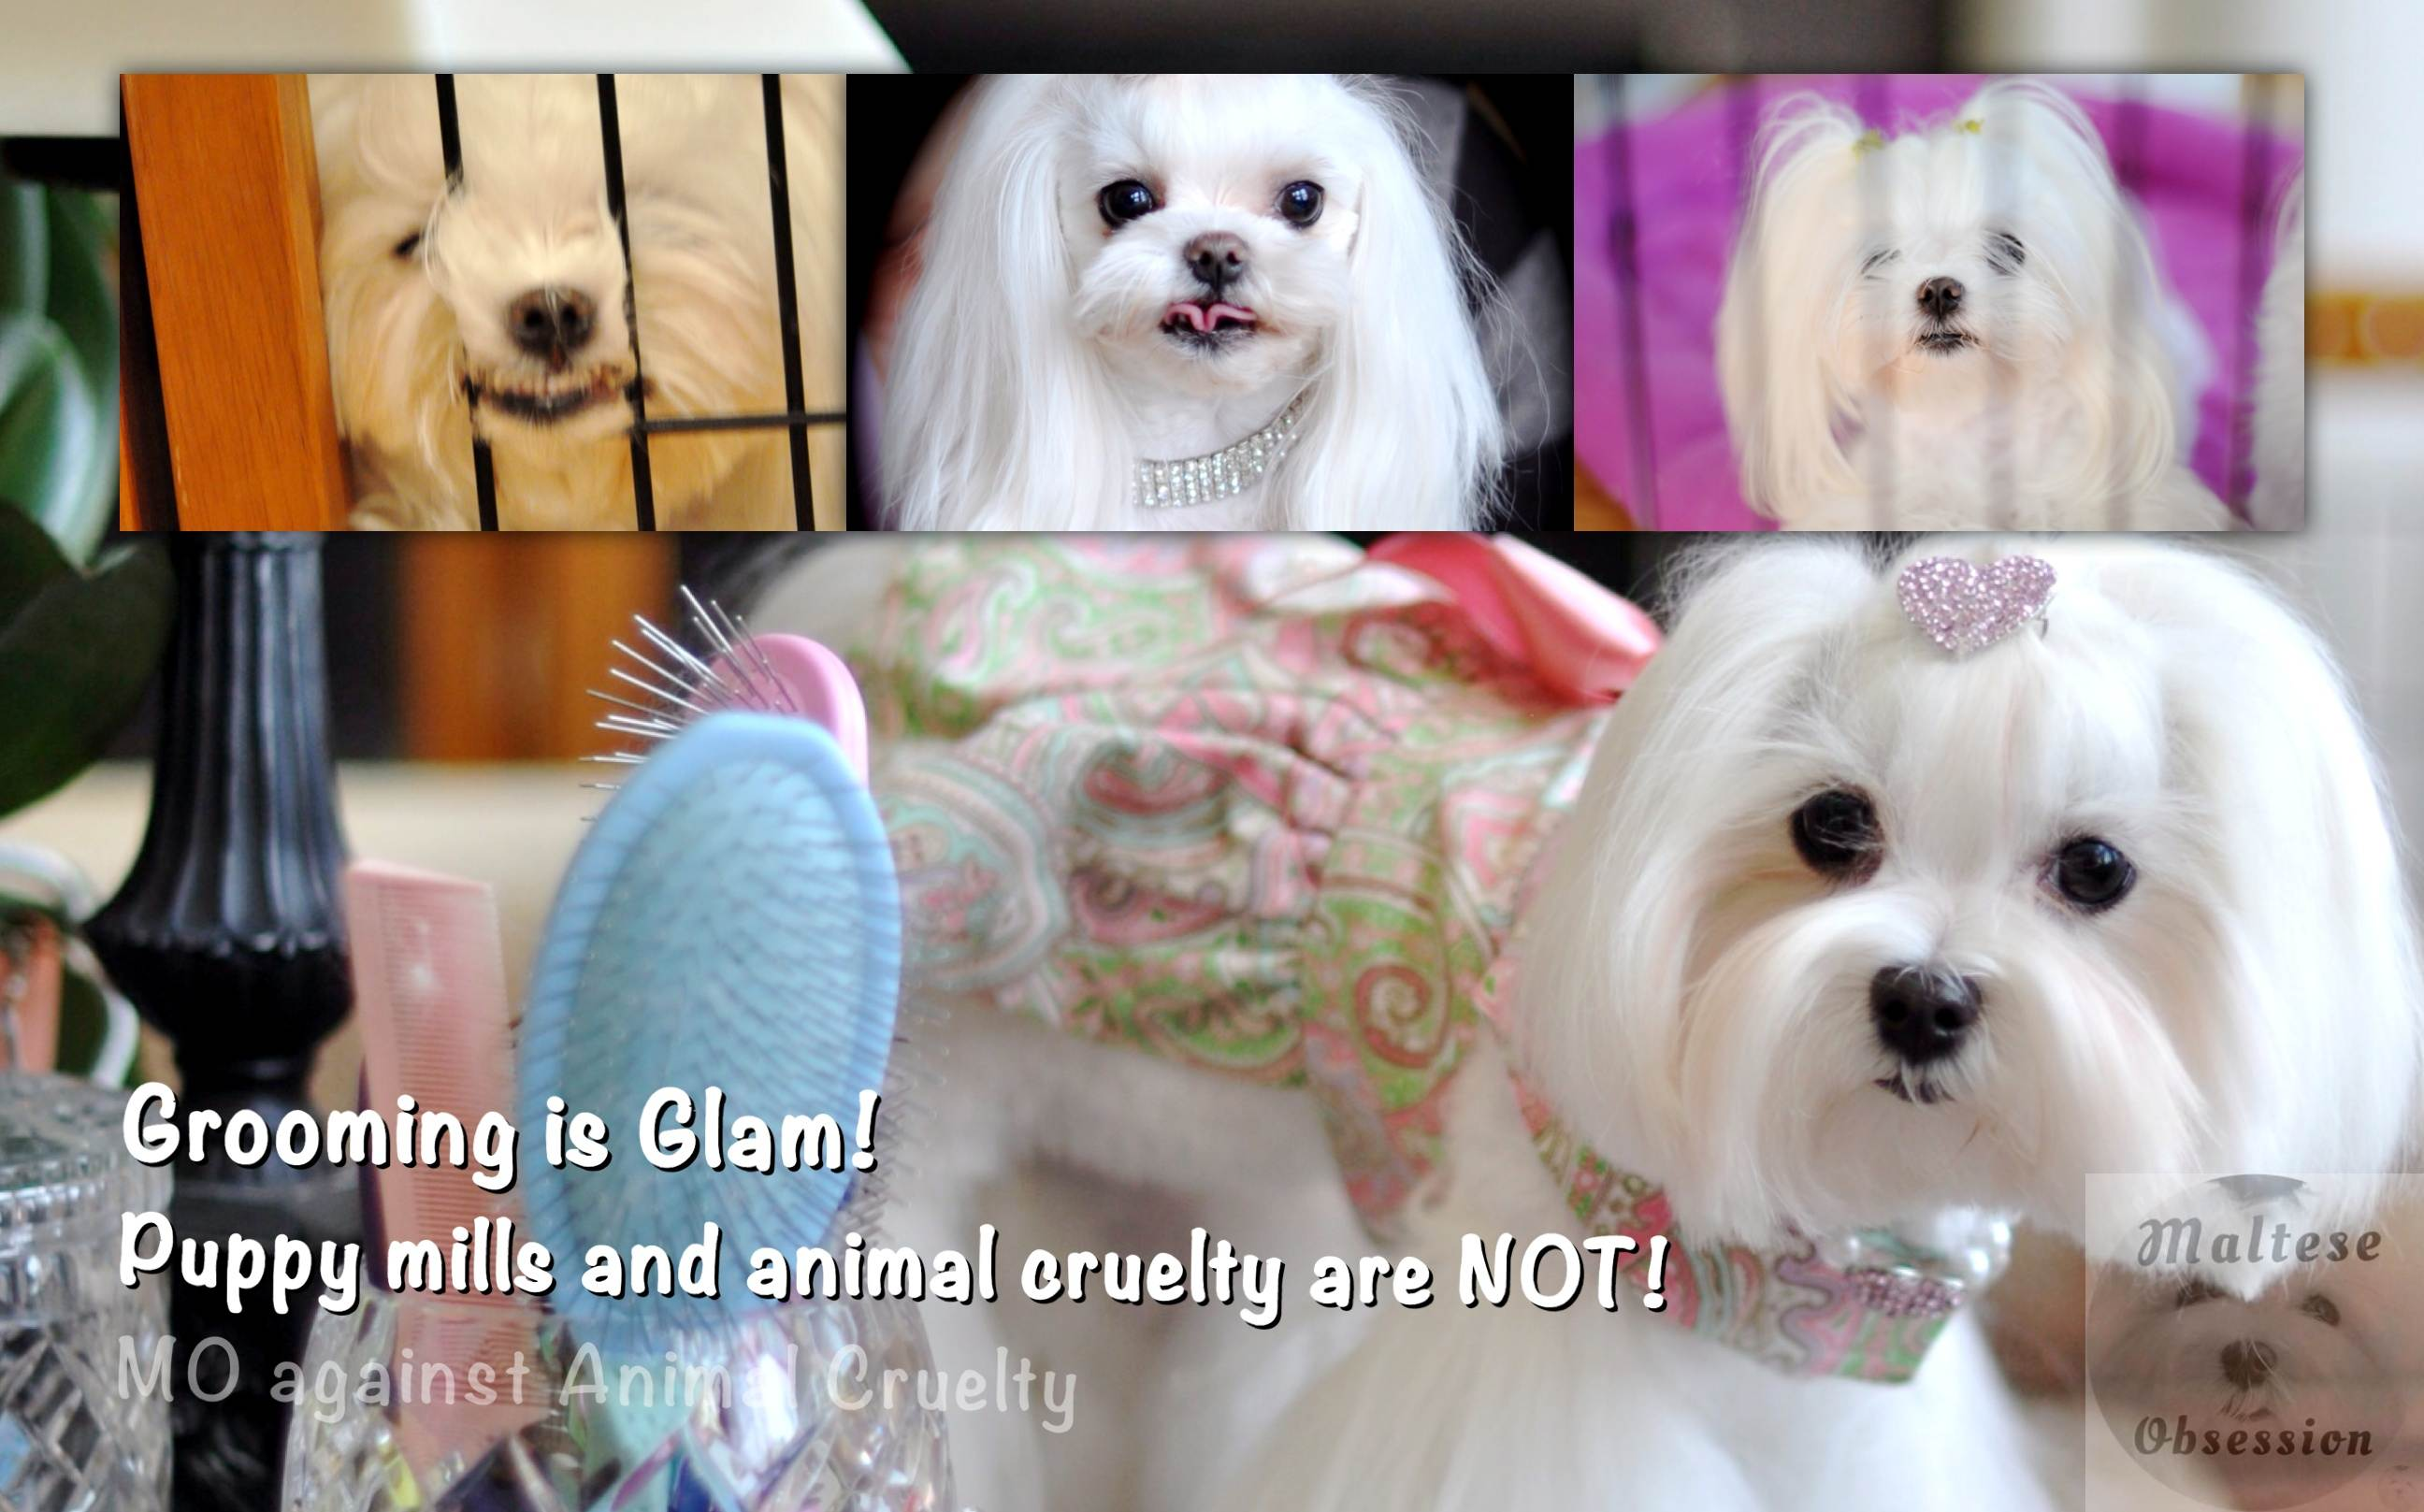 Grooming is GLAM Annimal Abuse is NOT